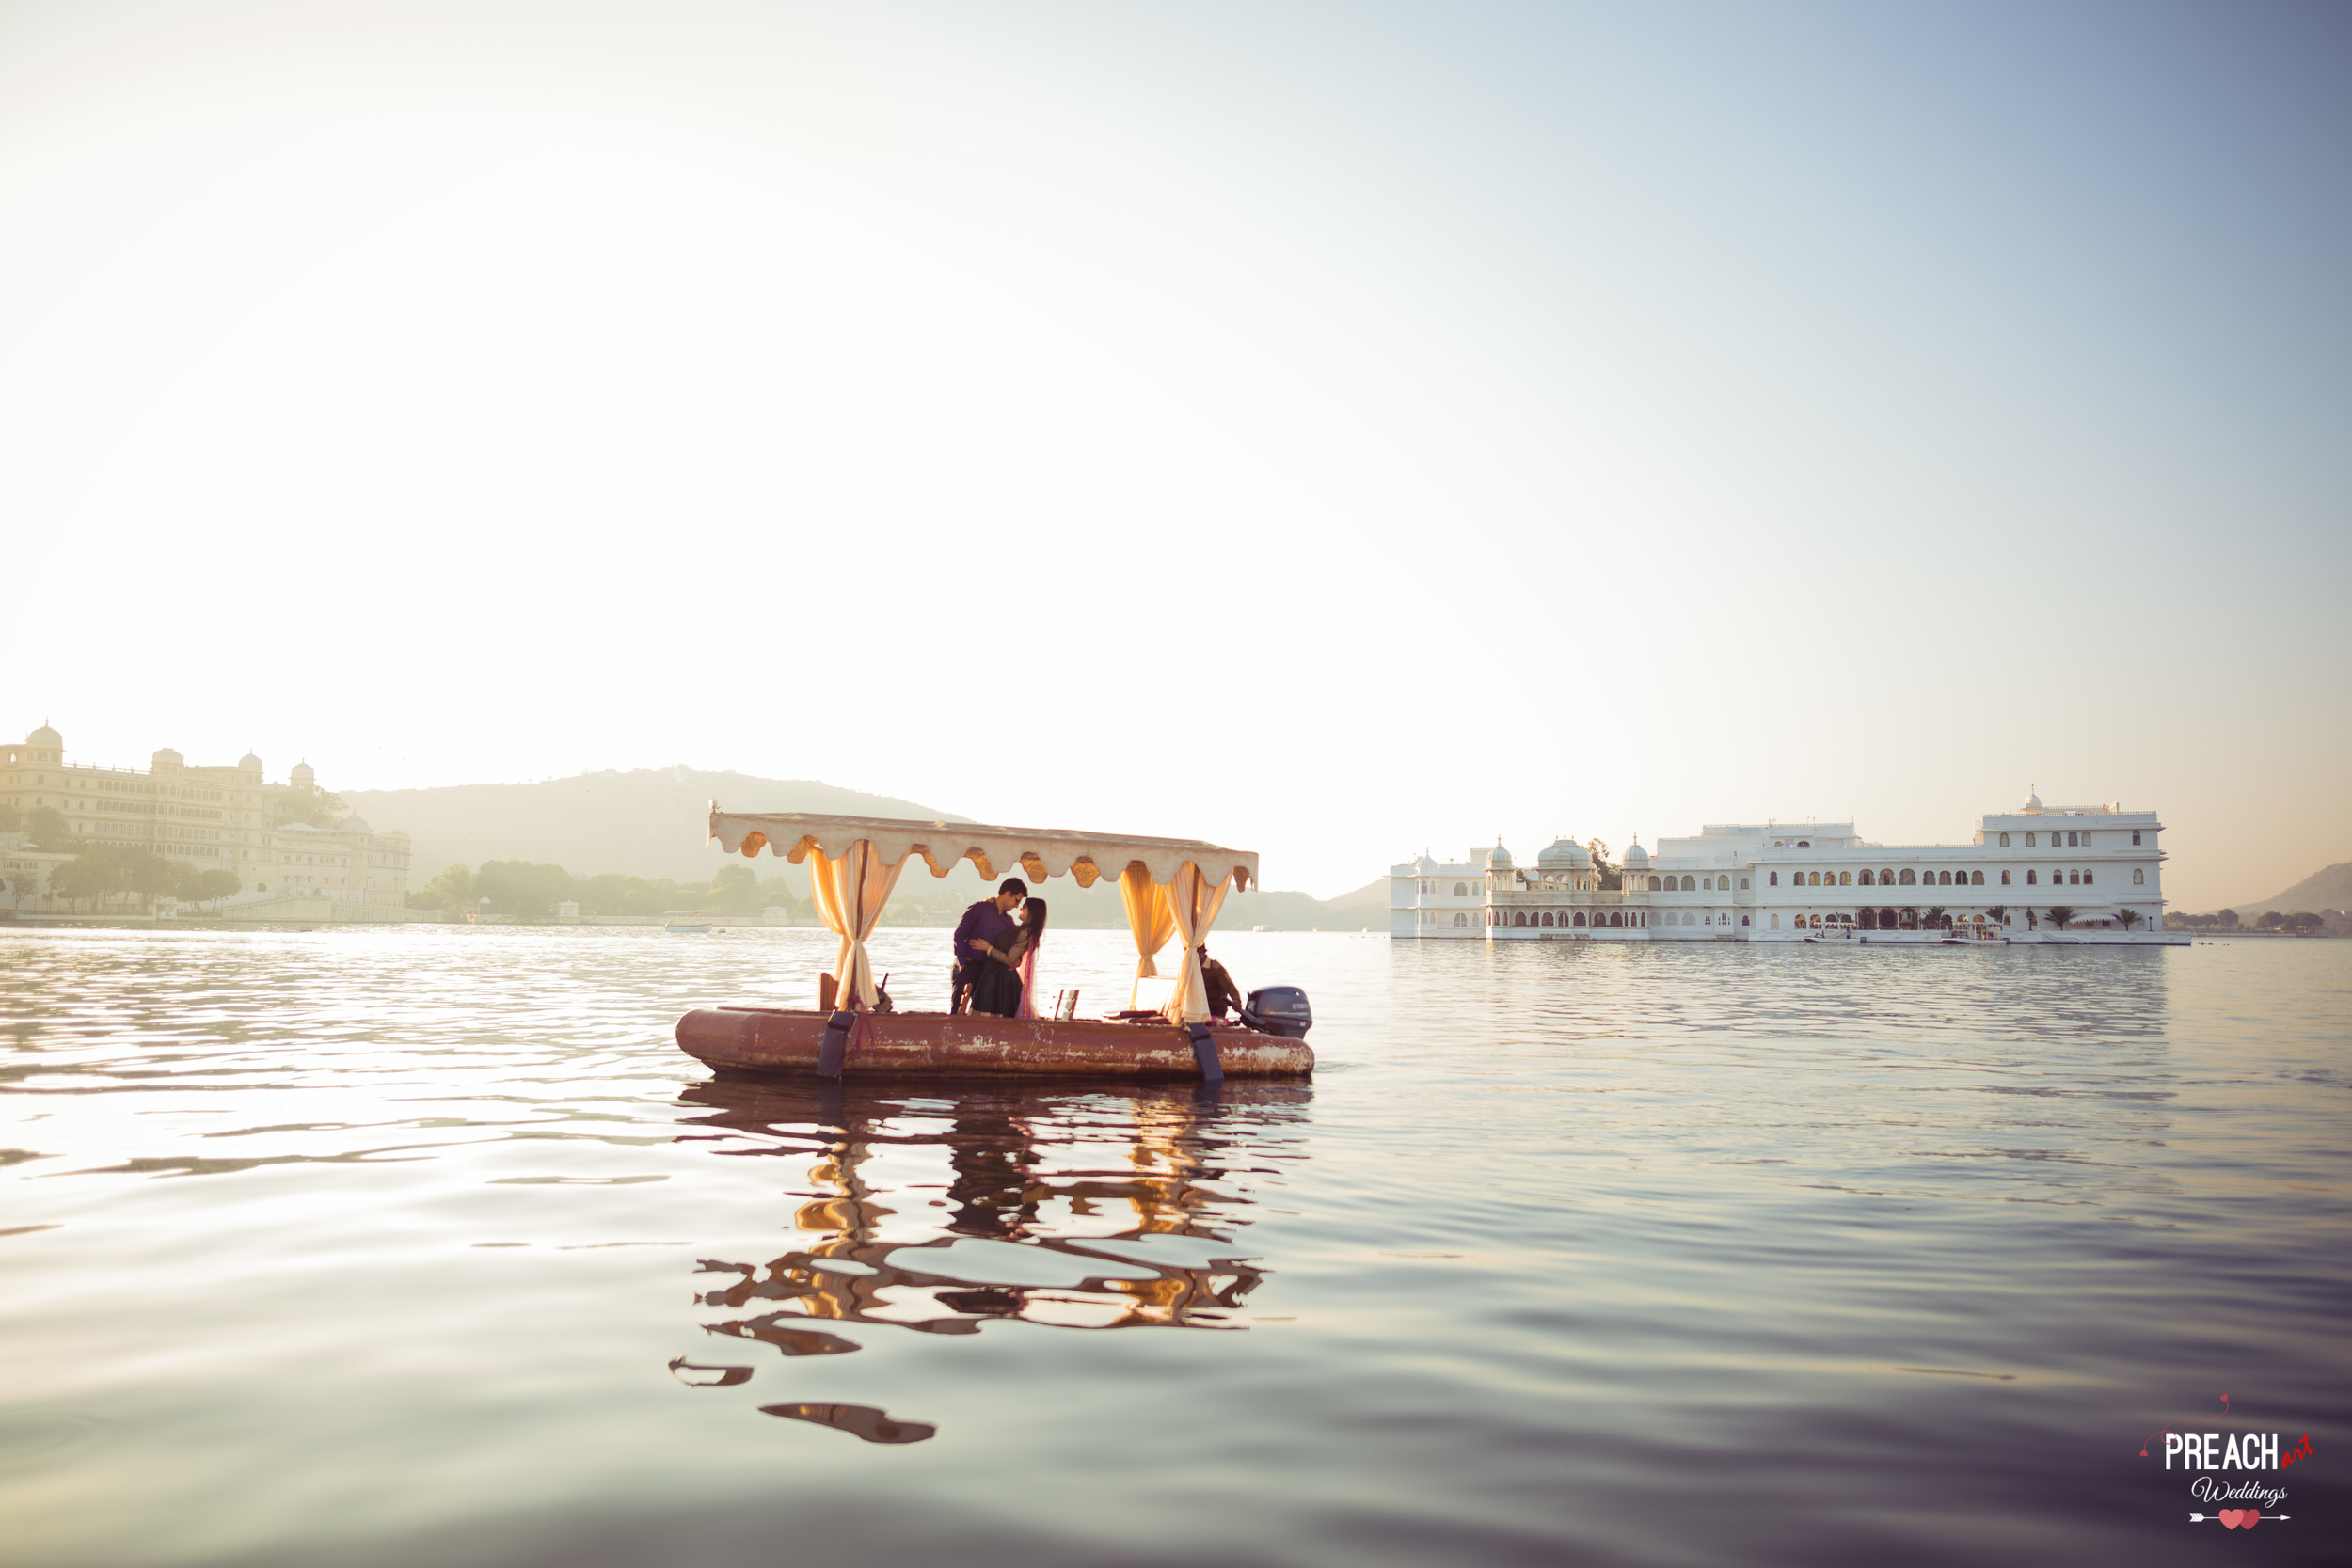 A&B_Udaipur Pre-wedding Shoot_PREACH ART-107.jpg